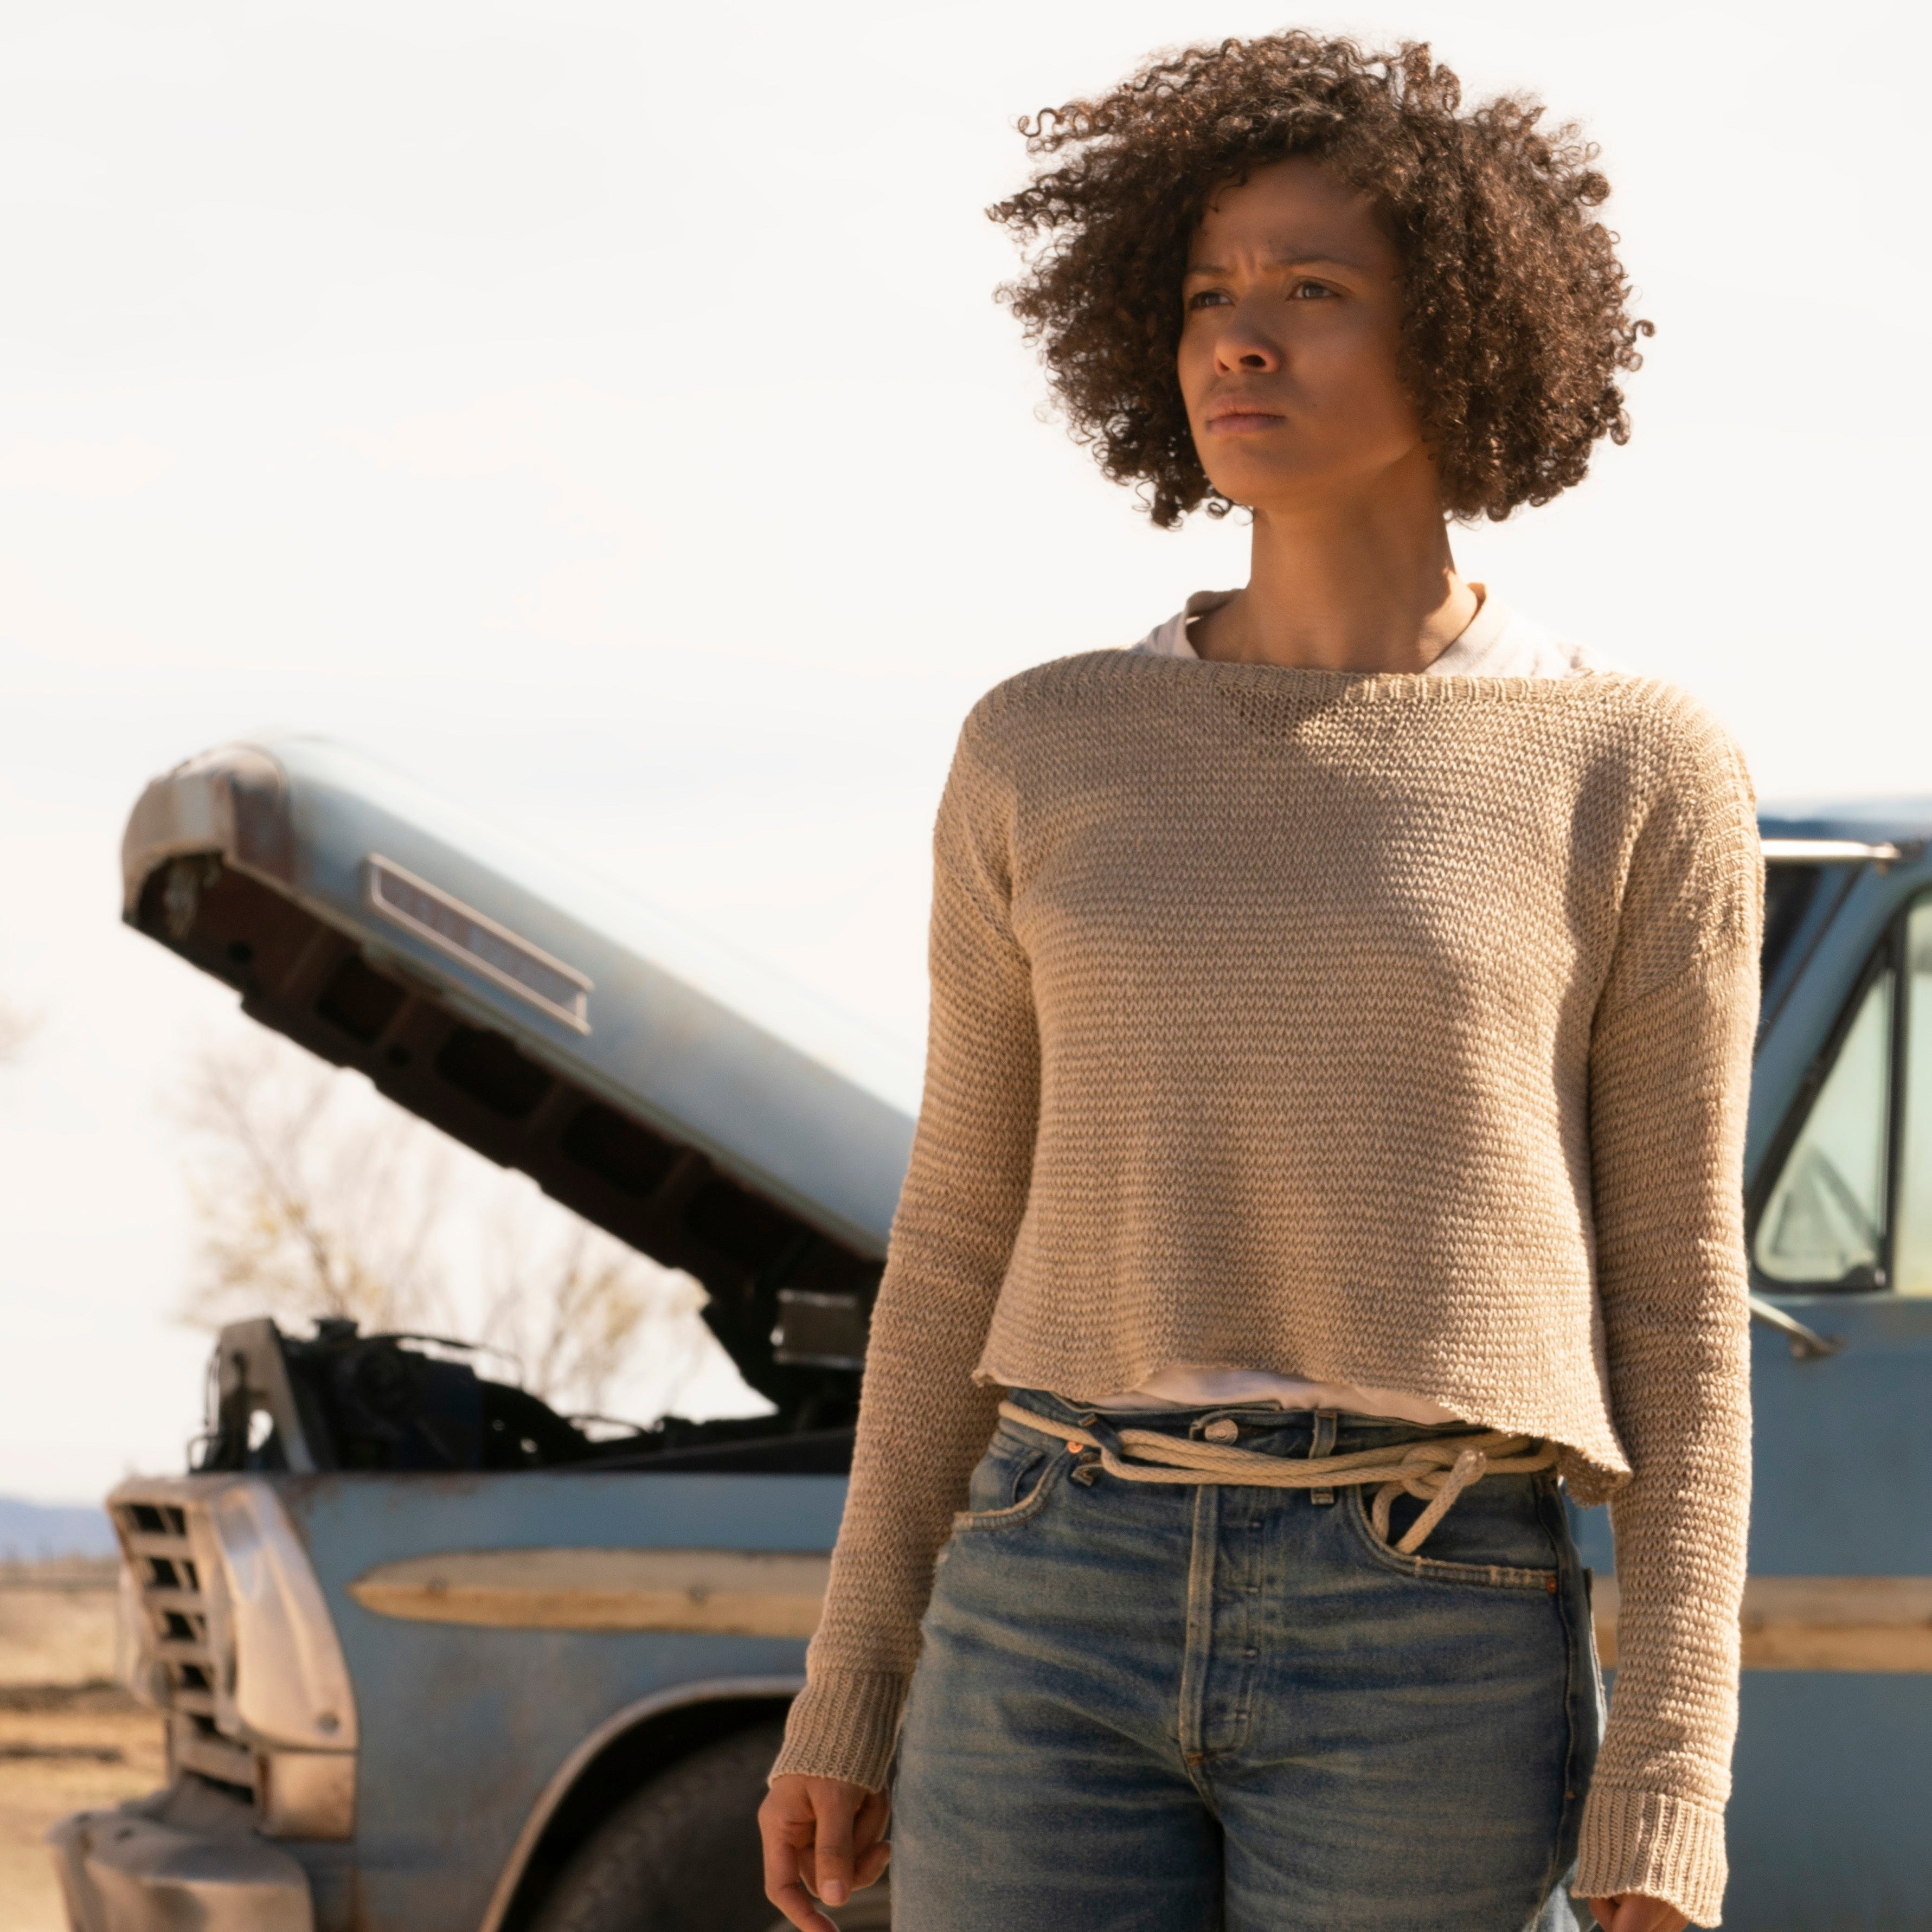 Gugu Mbatha-Raw finds her true 'Color'